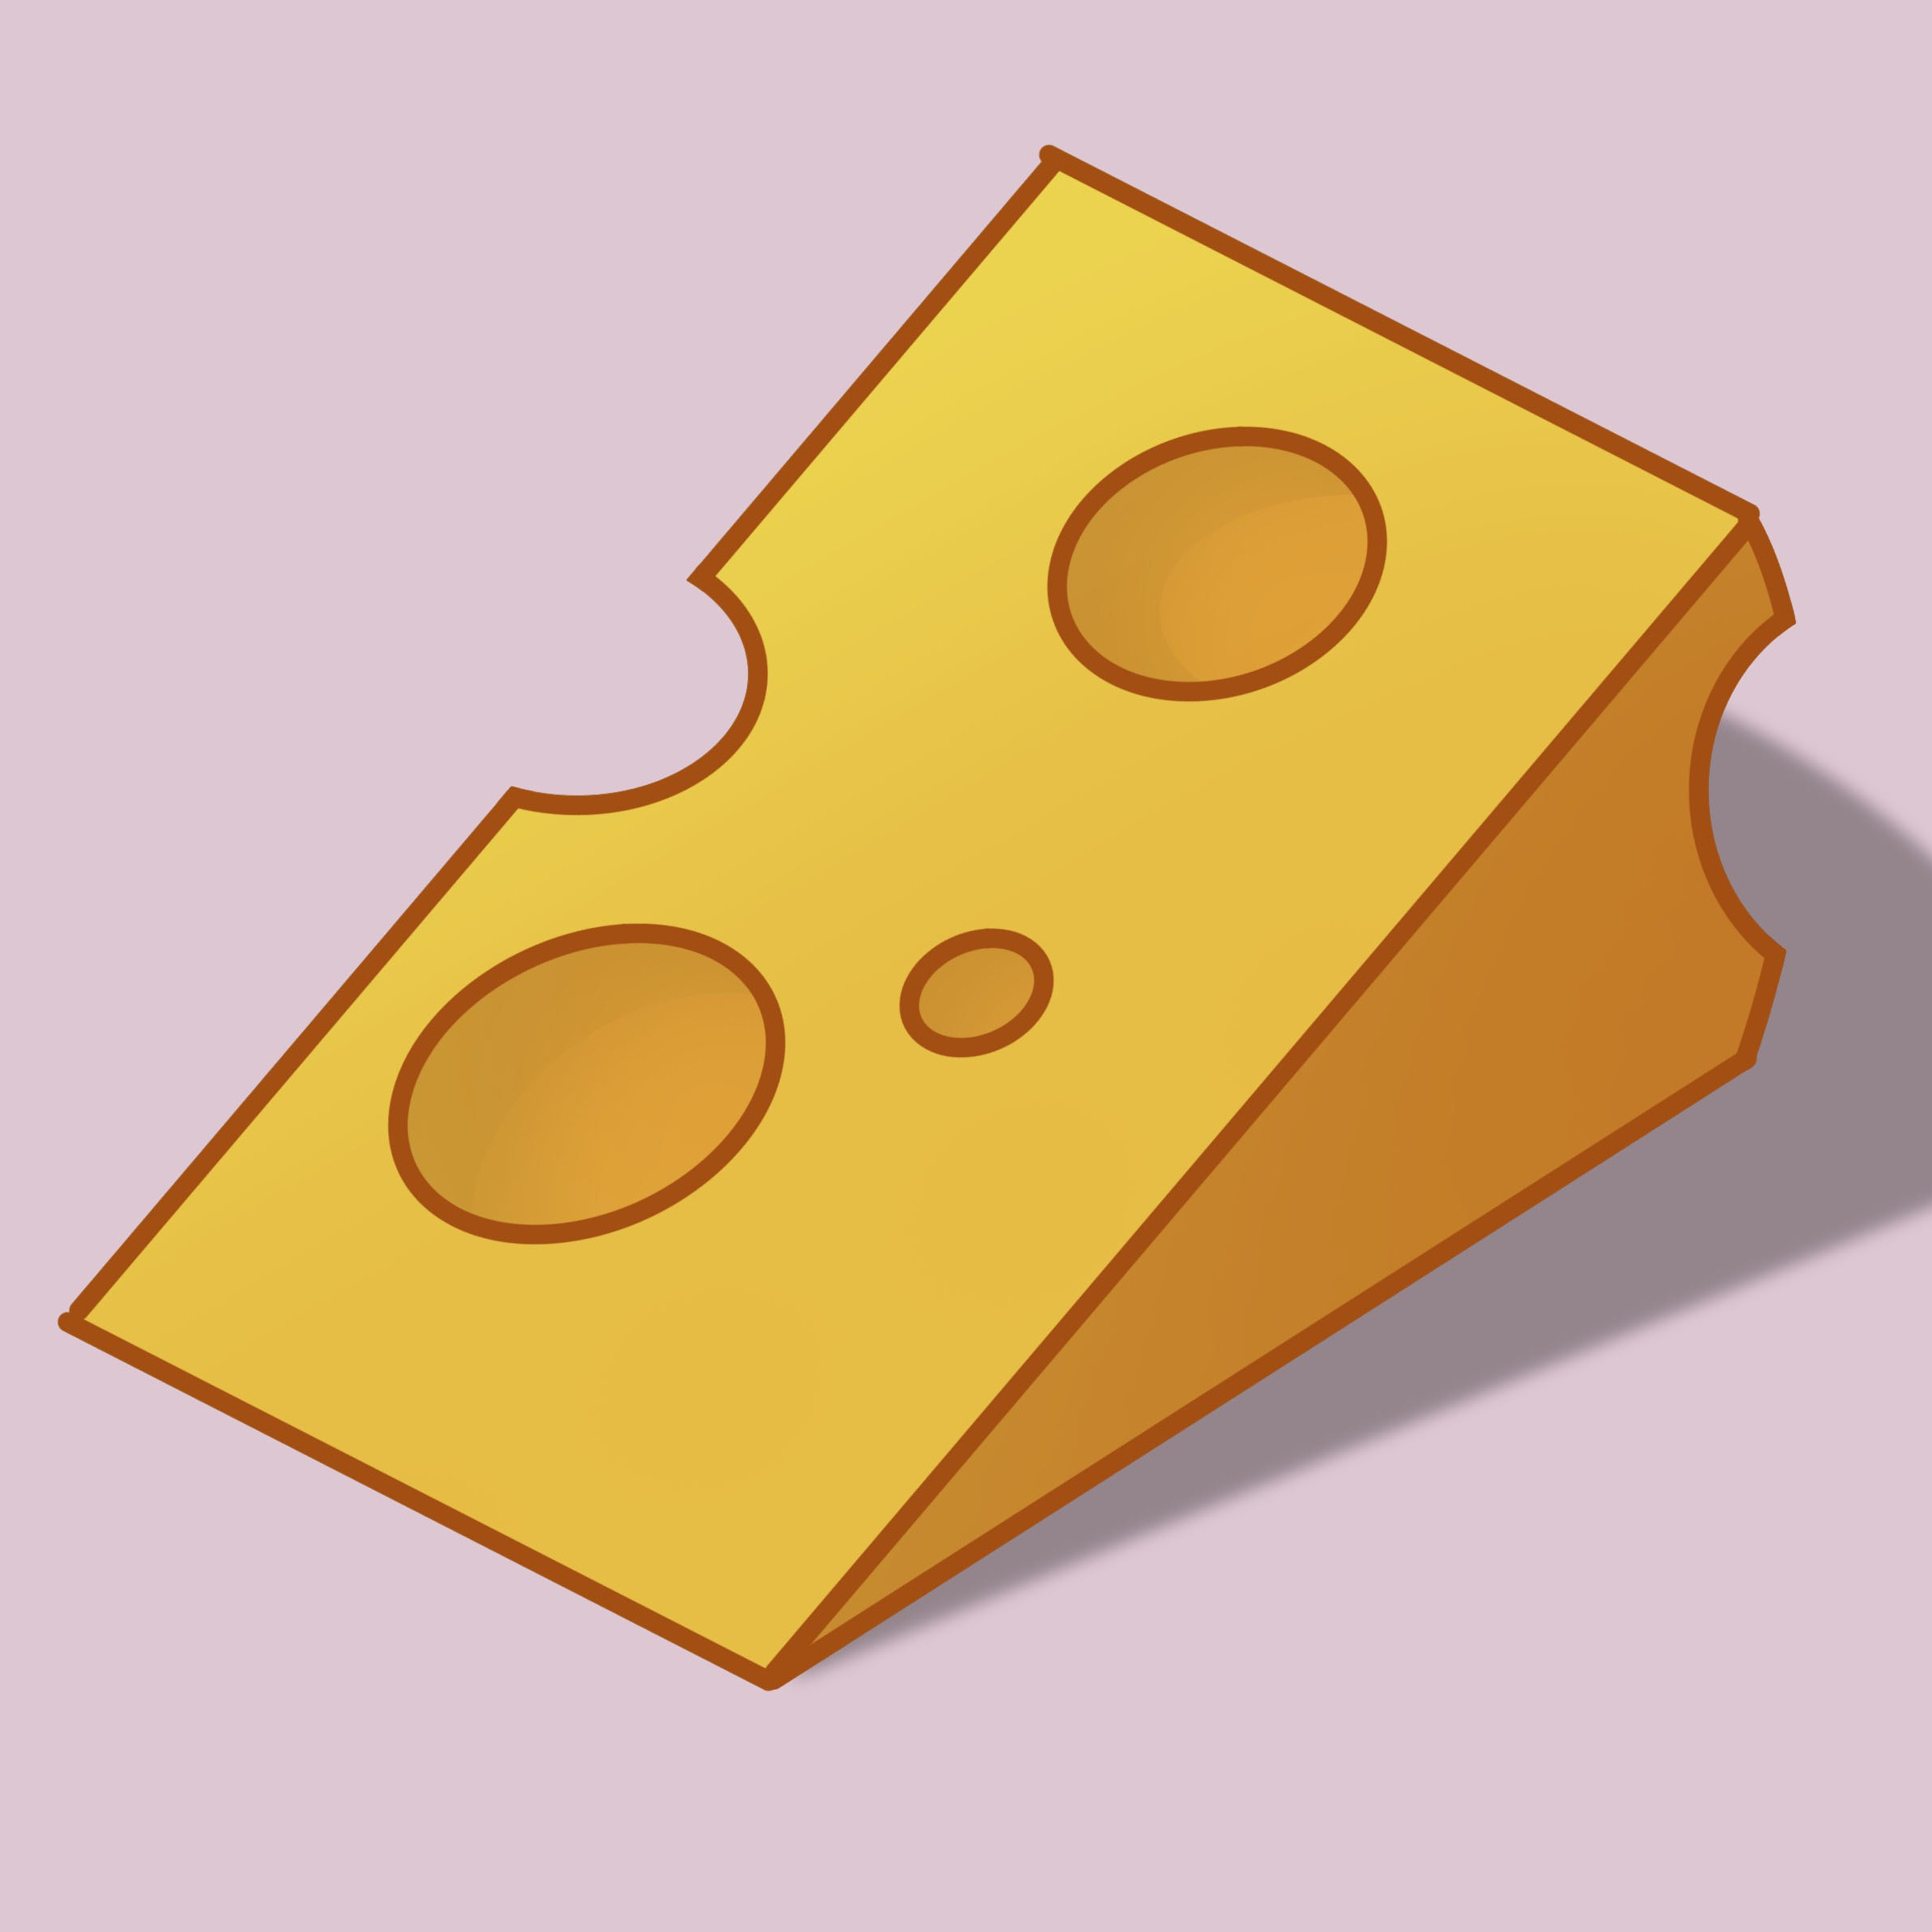 Cheese clipart drawing. How to draw a